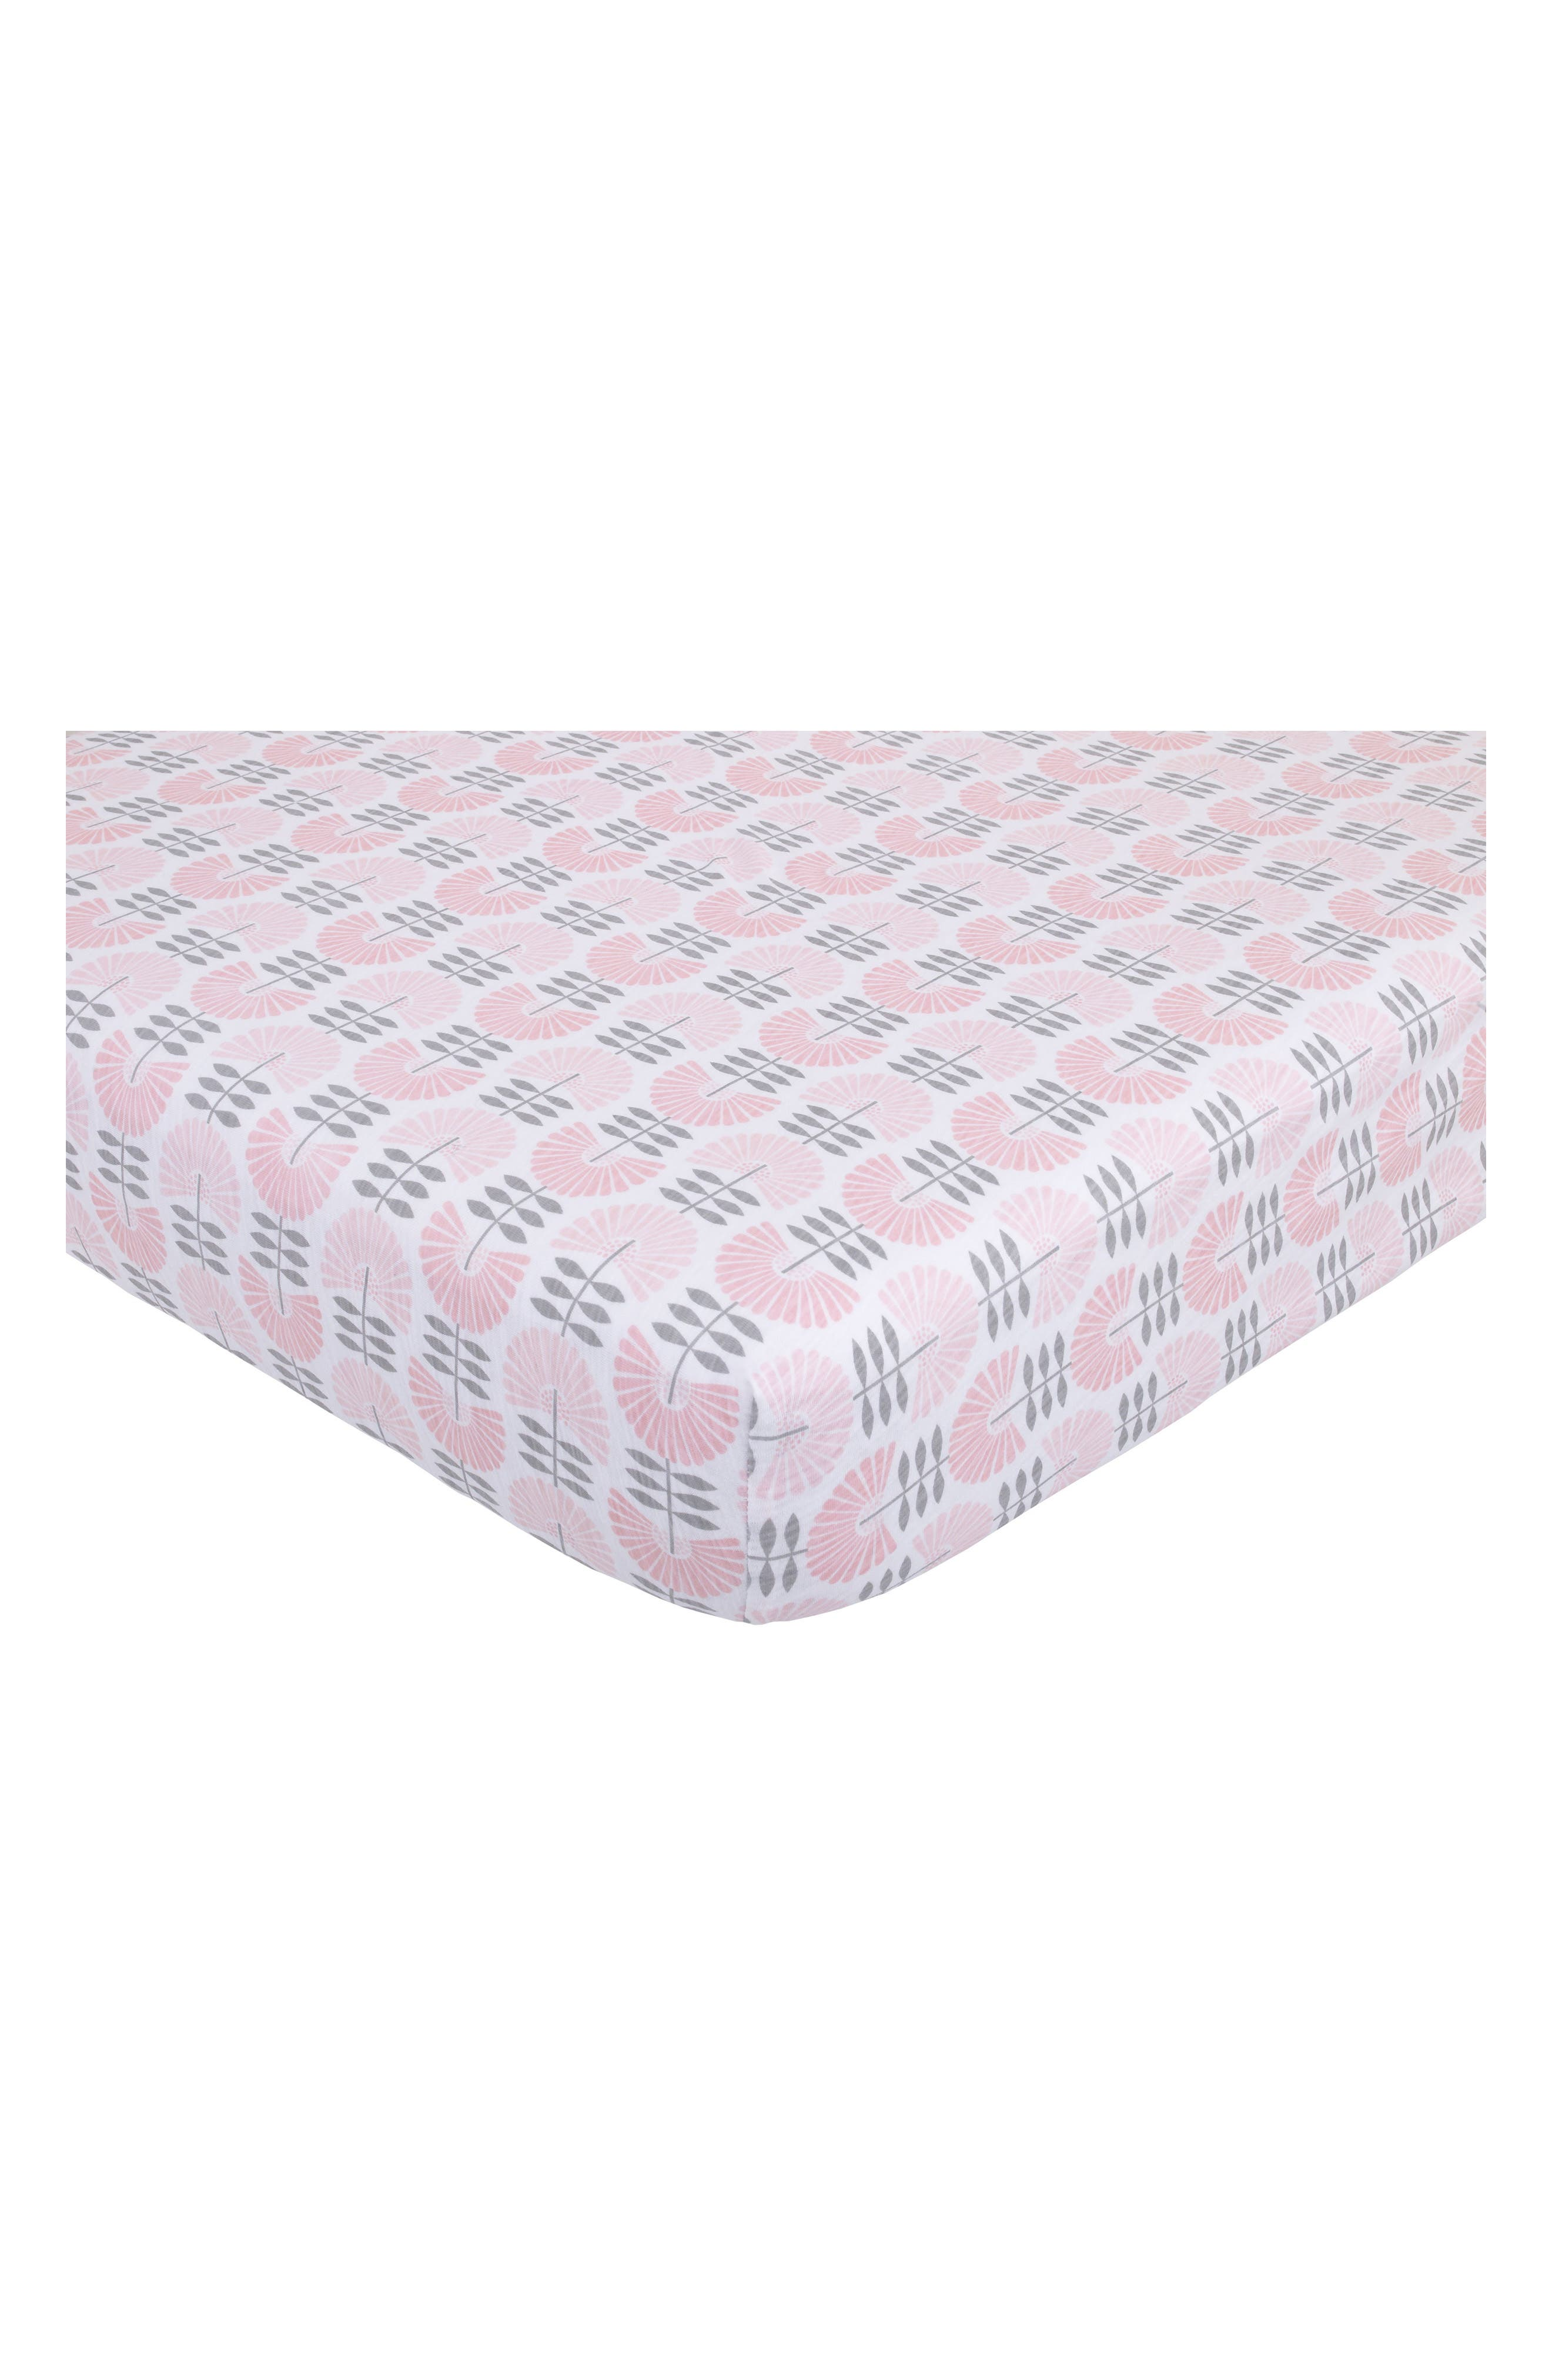 Southwest Skies Fitted Sheet,                             Main thumbnail 1, color,                             Light Pink